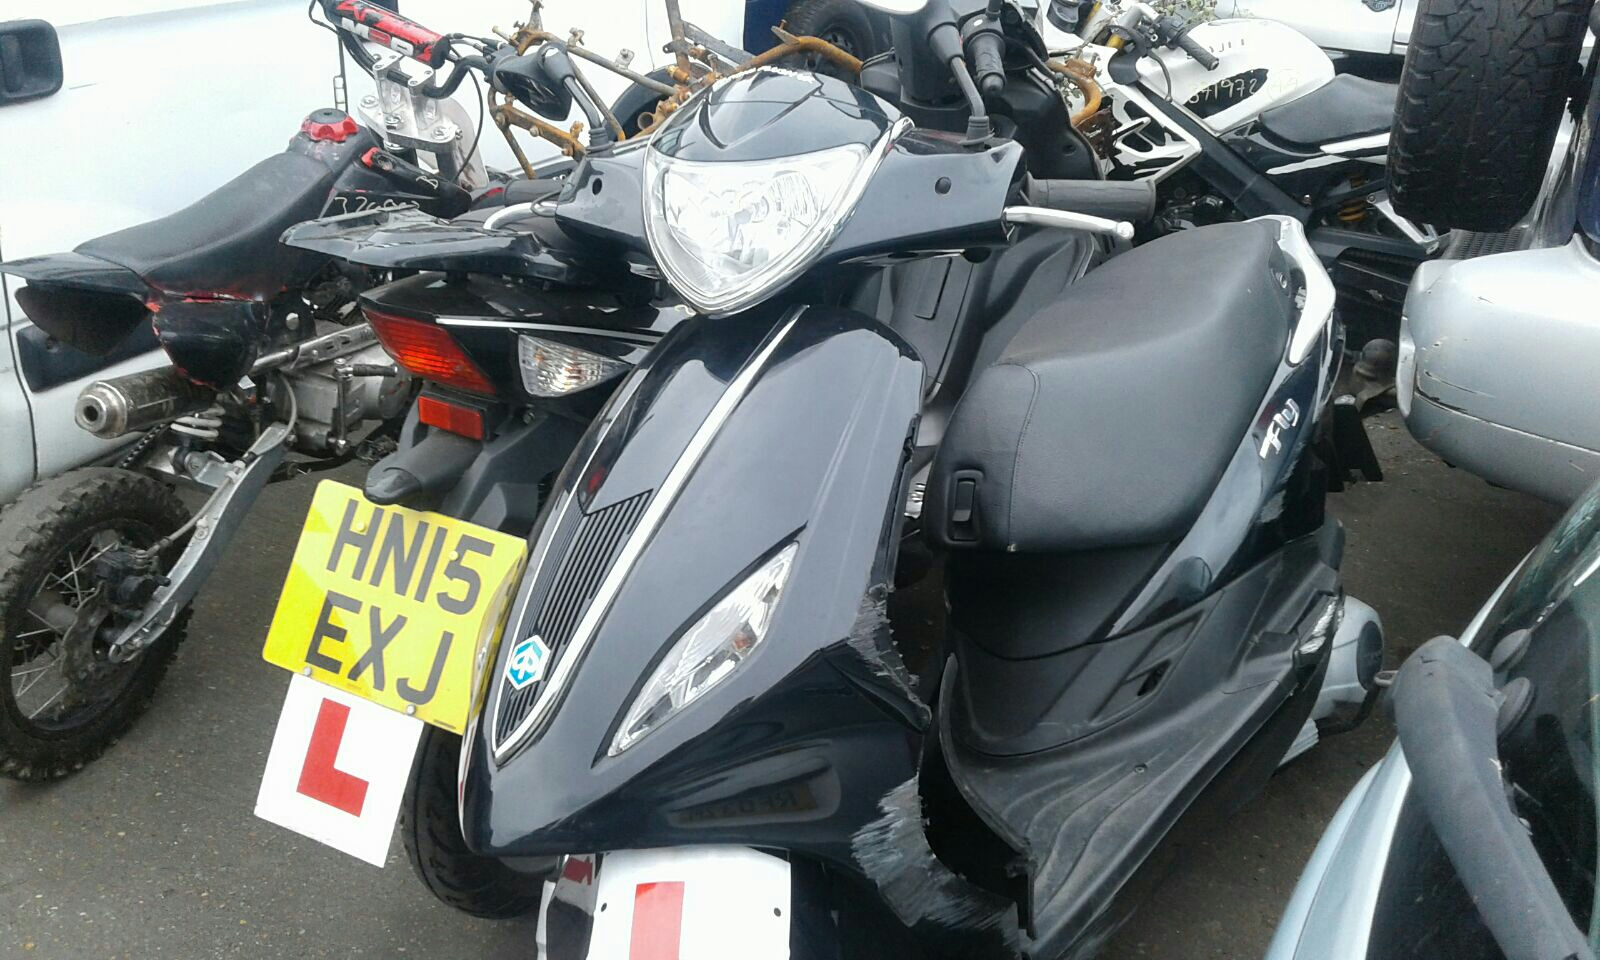 Piaggio Fly 1989 on Fly 125 Scooter / scrap / salvage car for sale ...